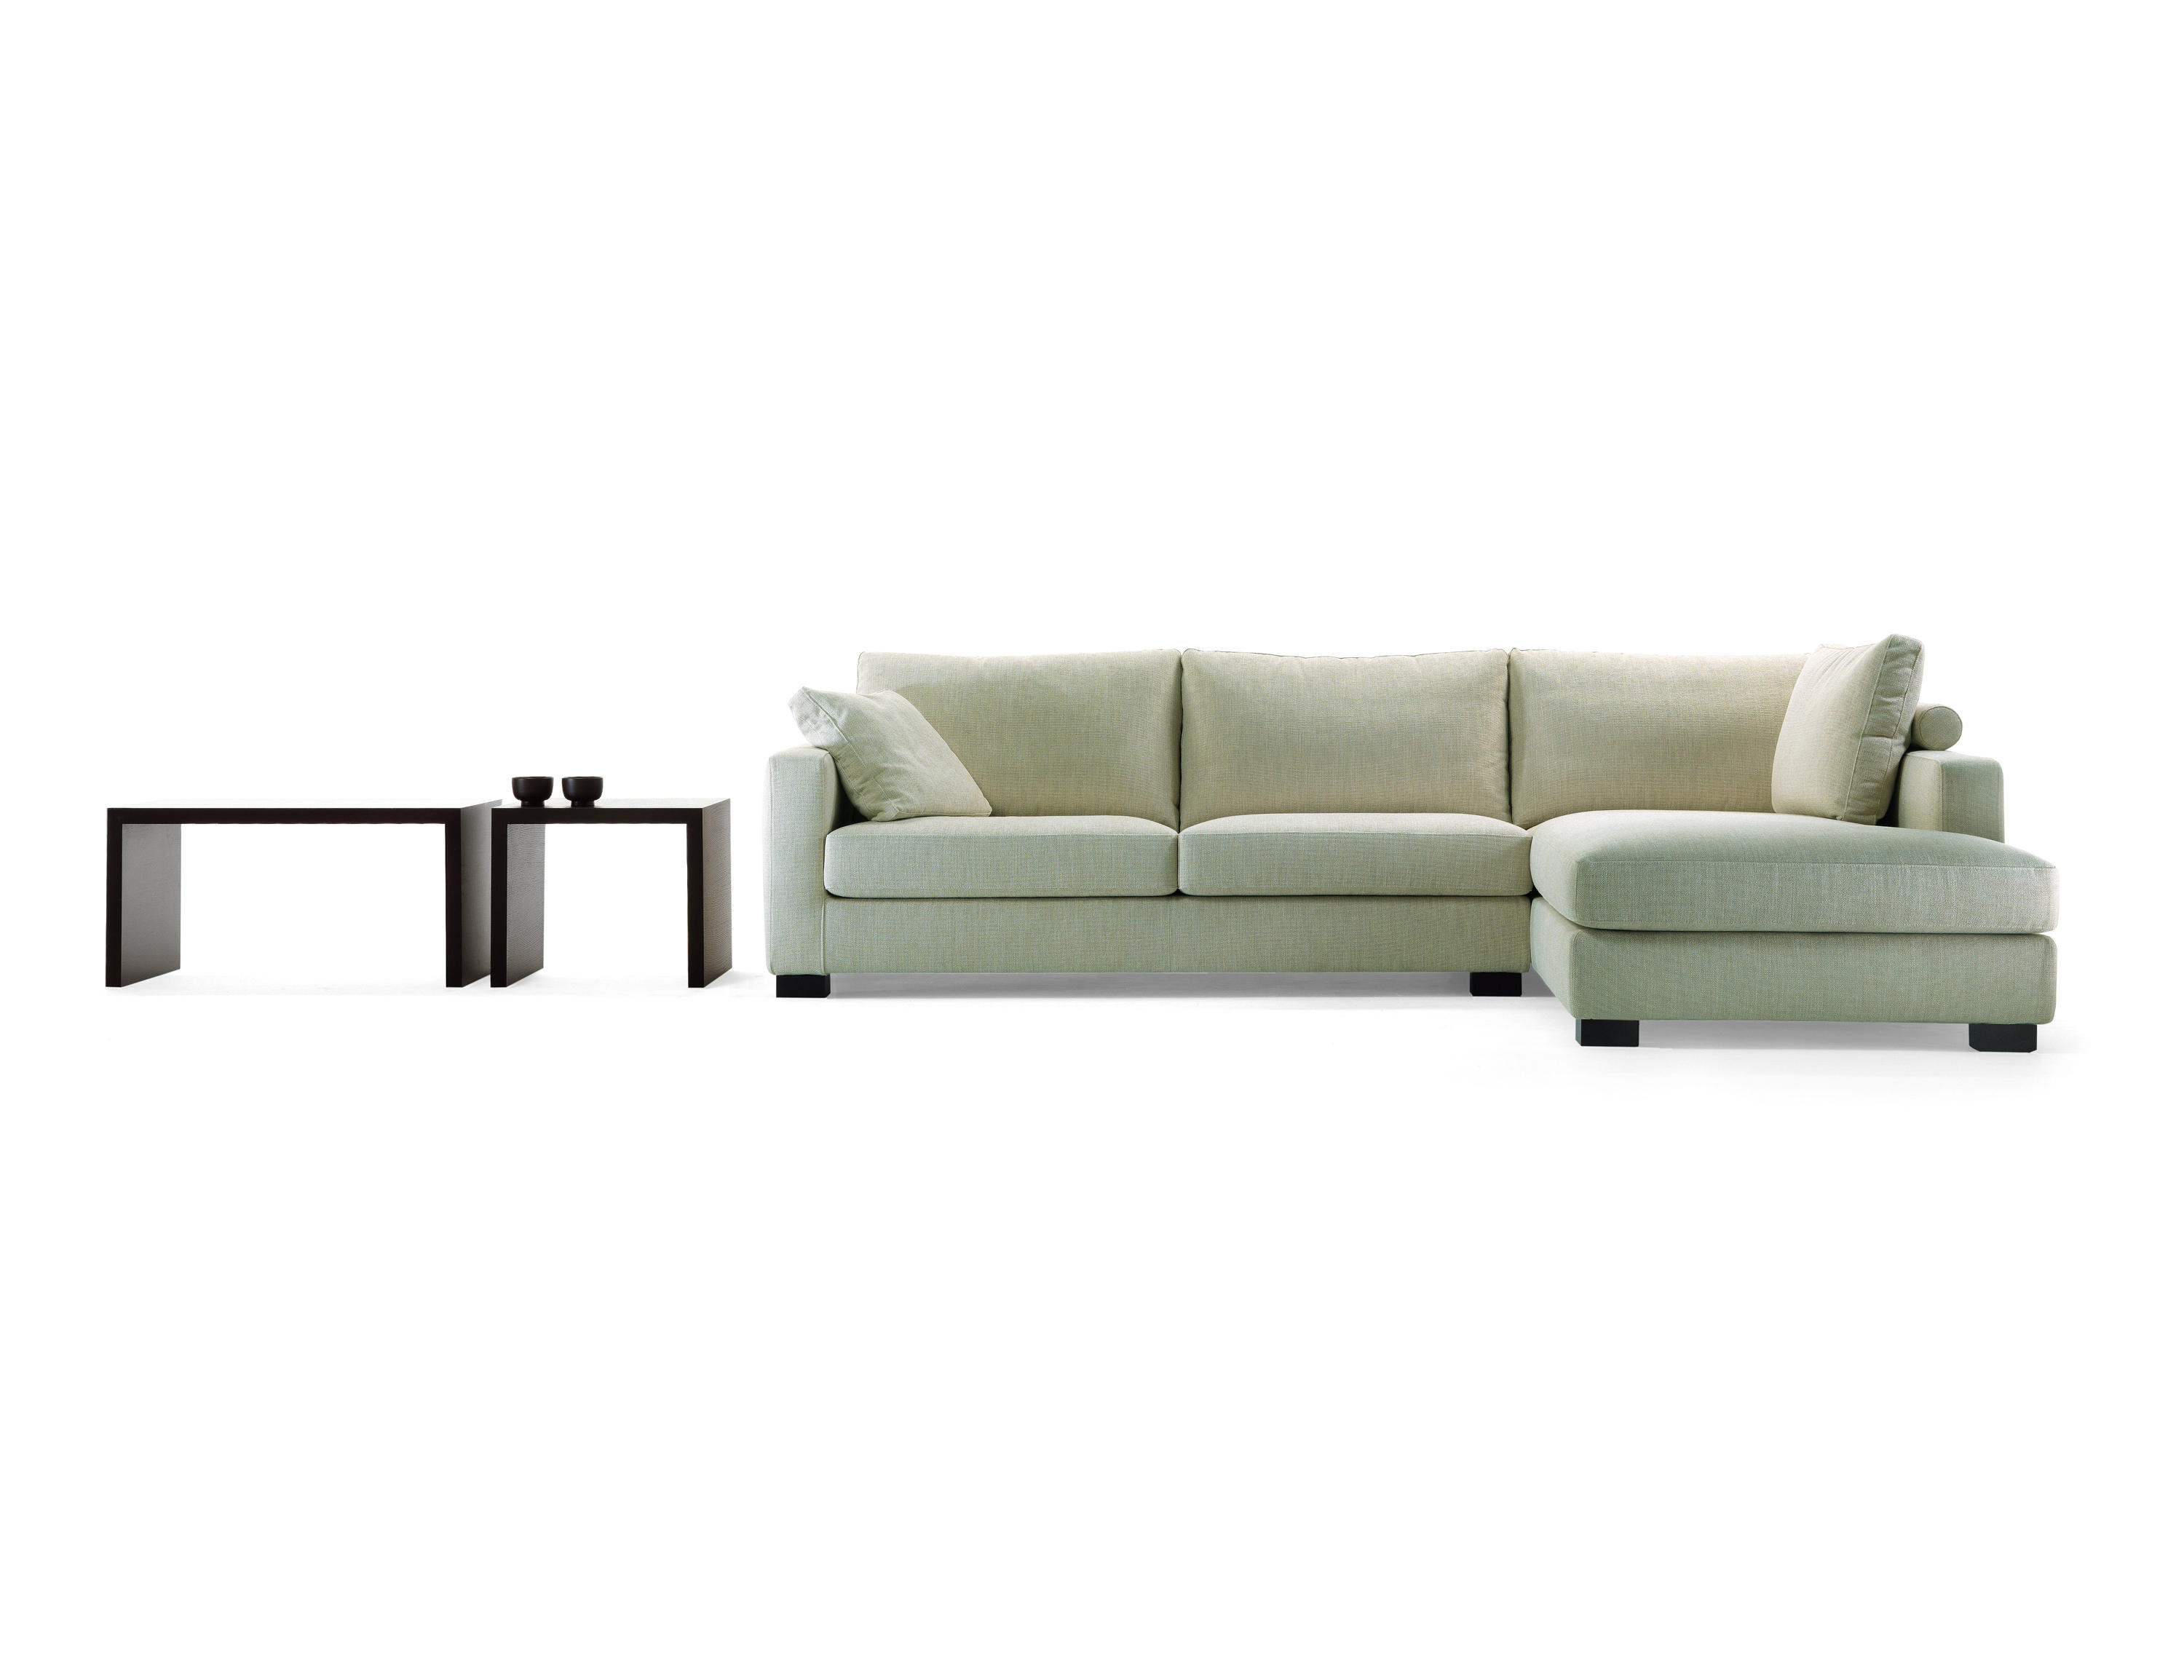 oliver sofa decorating a console table jesse pomphome thesofa